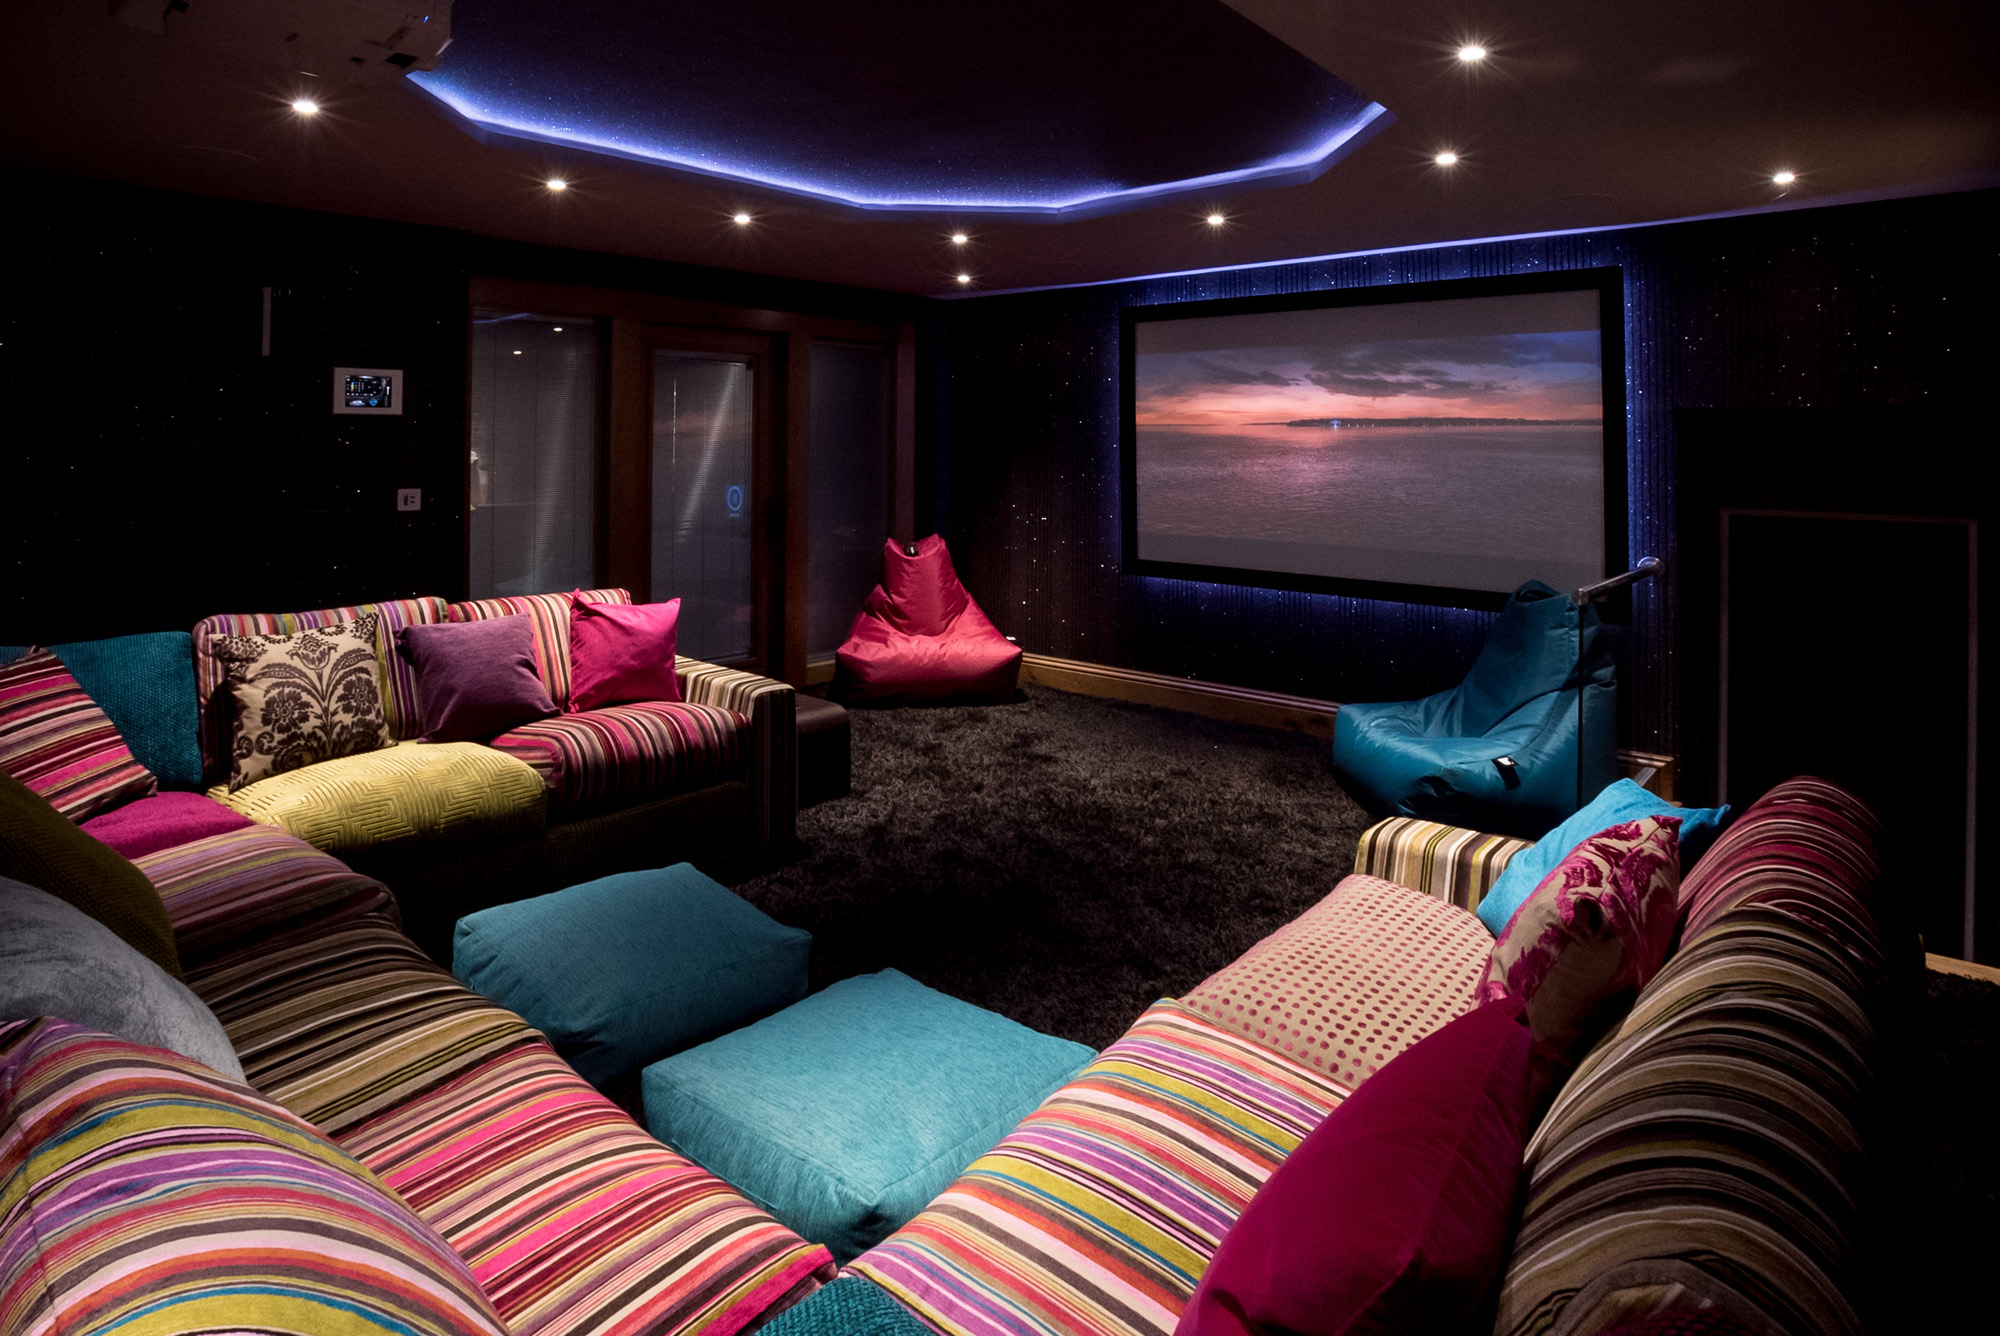 Cinema at Waternook, Howtown. Overlooking Ullswater in the Lake District, UK. Copyright Ben Barden Photography Ltd. 2015